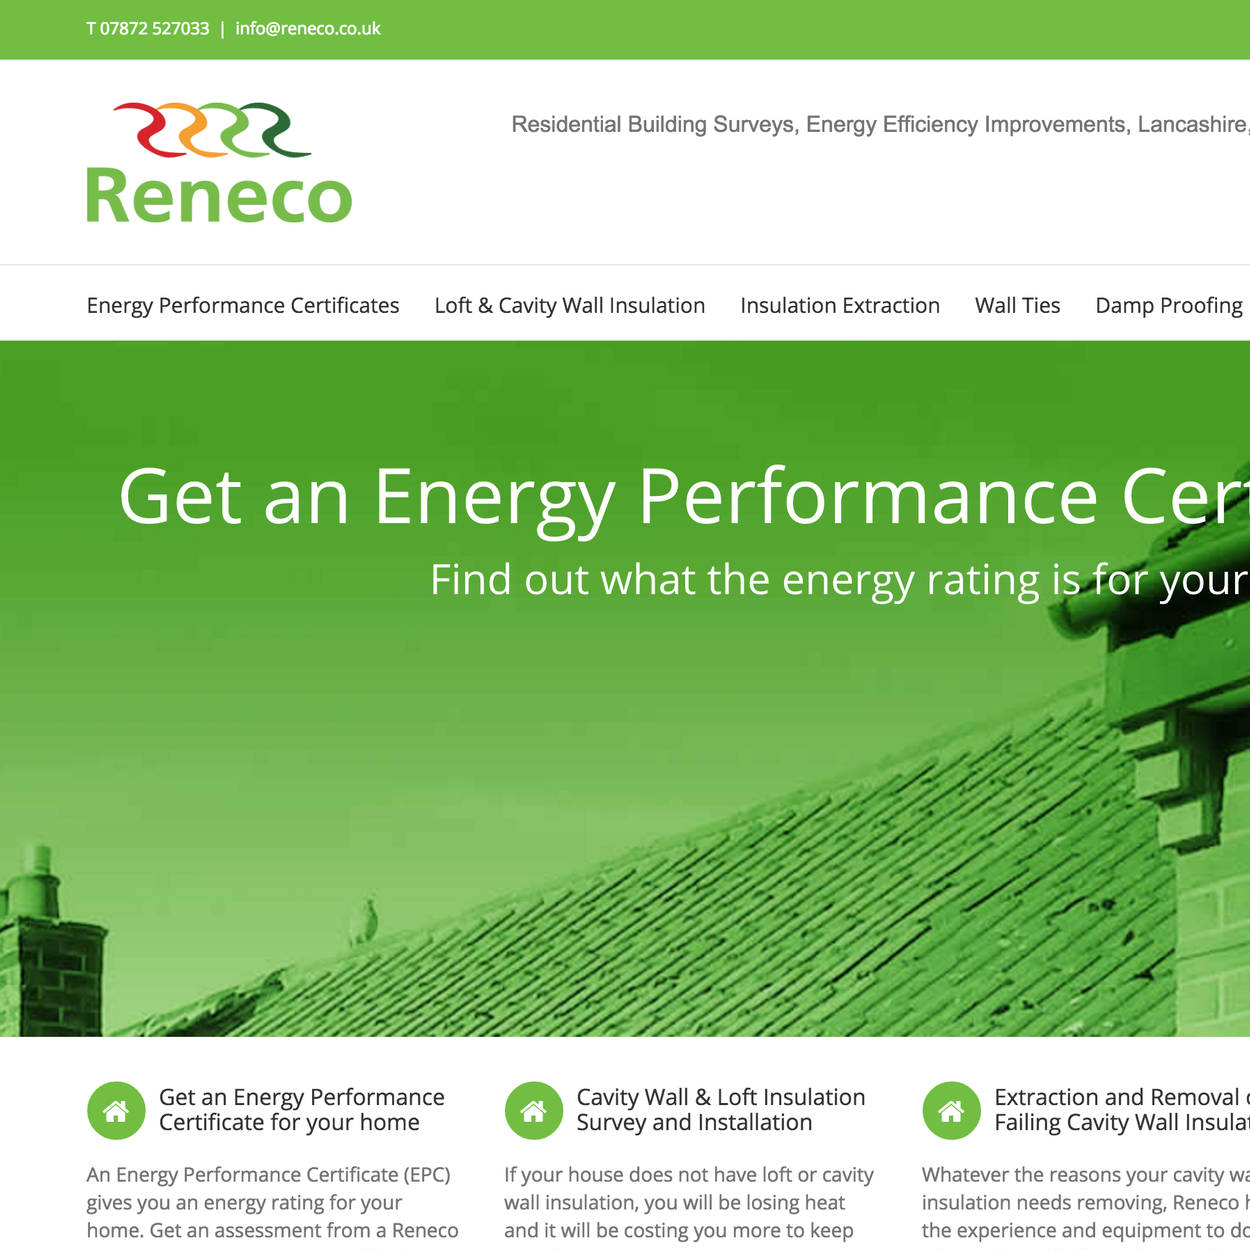 orangebox-web-design-reneco